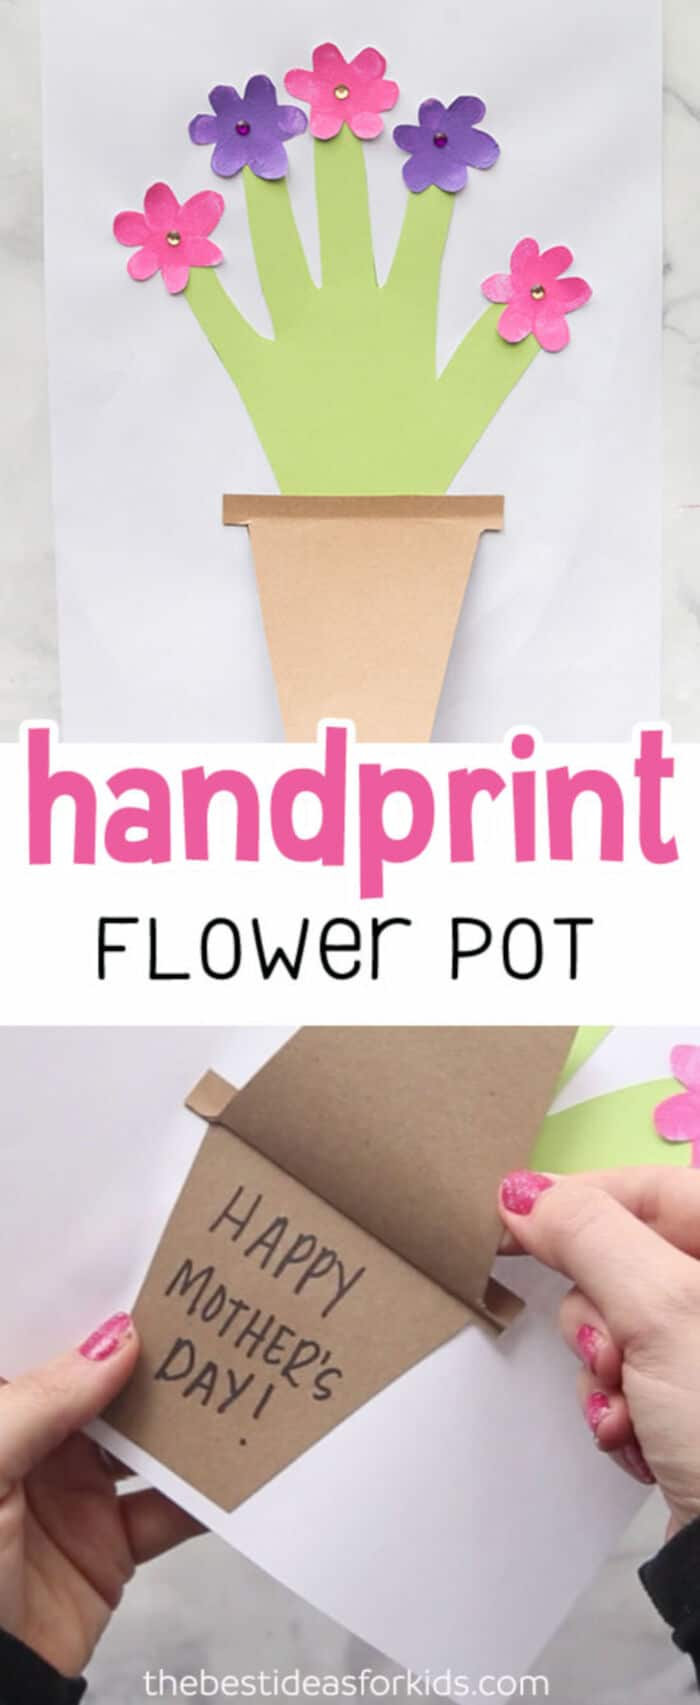 Mother's Day Handprint Flower Pot by The Best Ideas for Kids